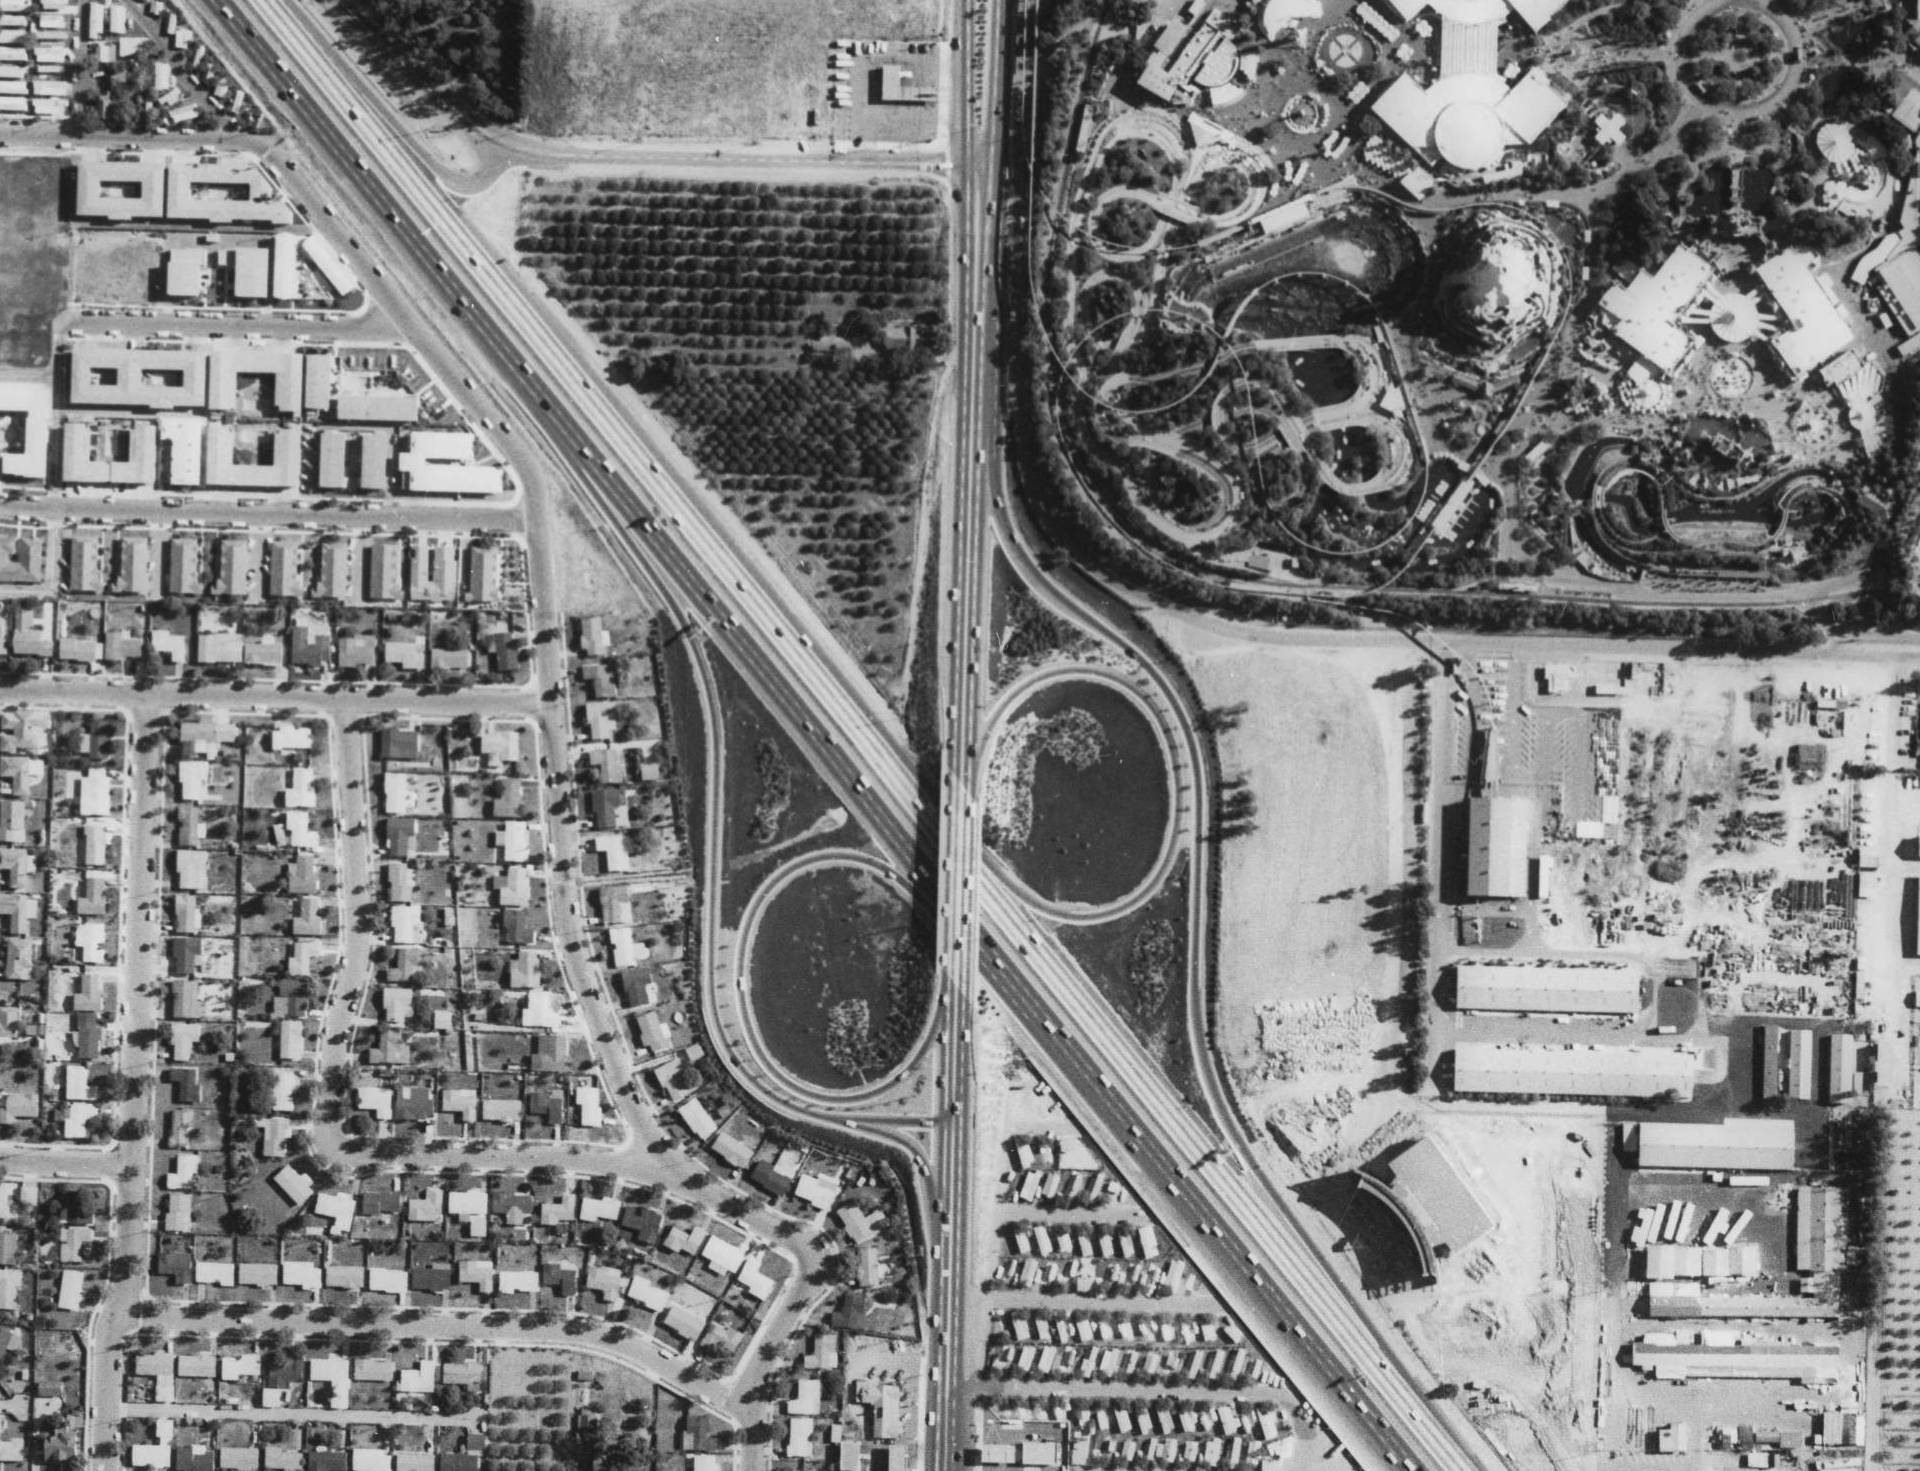 Aerial view of the Disneyland and the Santa Ana Freeway's Harbor Boulevard interchange, circa 1965